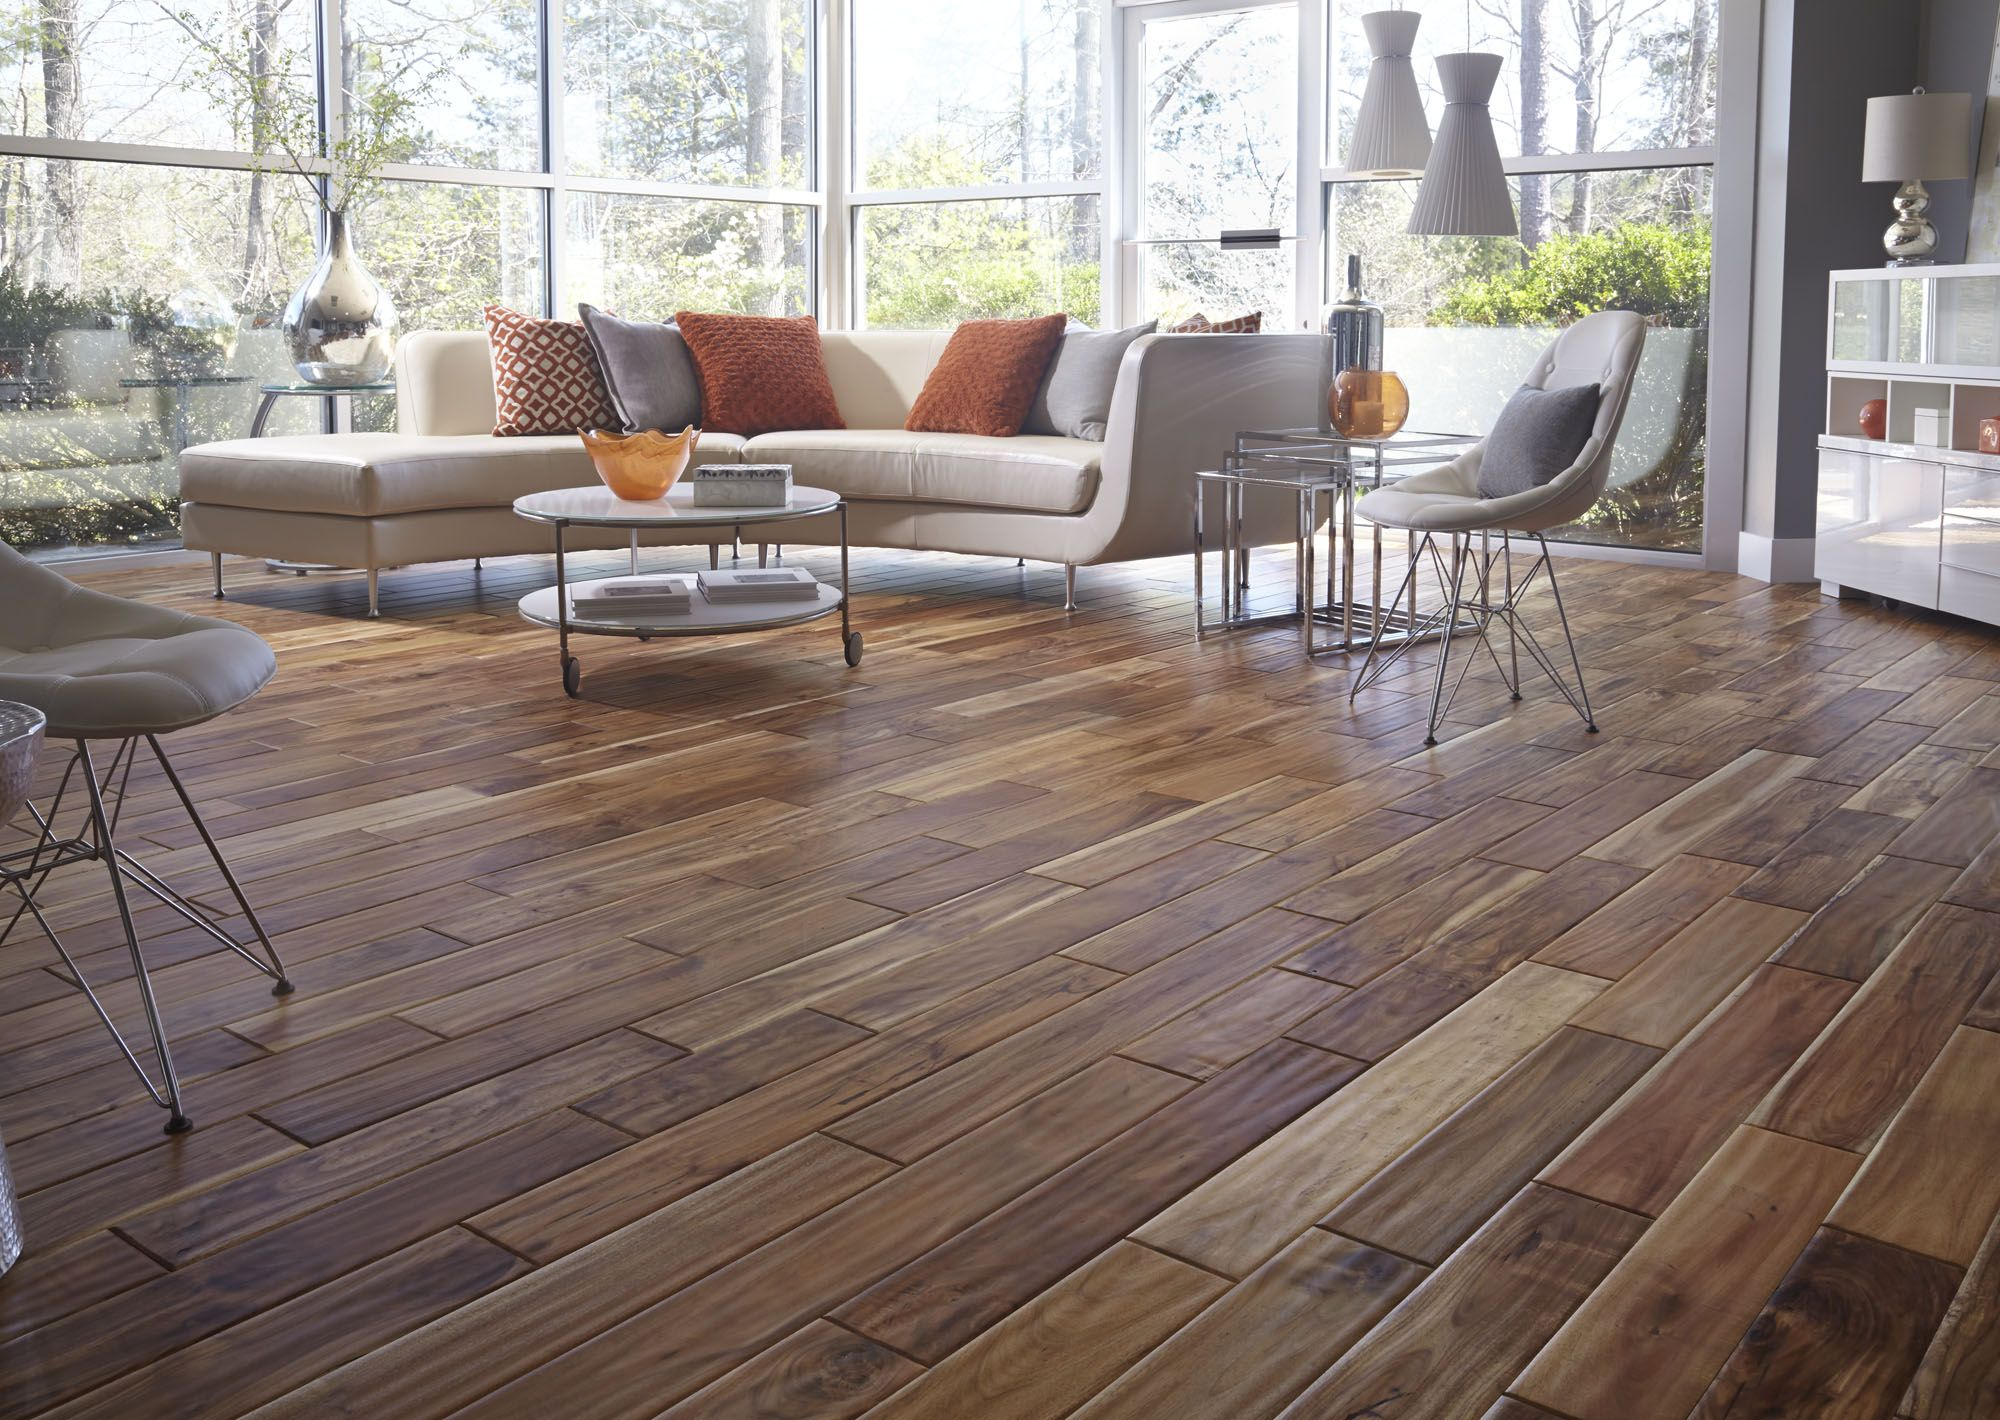 Tobacco Road Acacia A Distressed Hardwood Style Homeowners Love